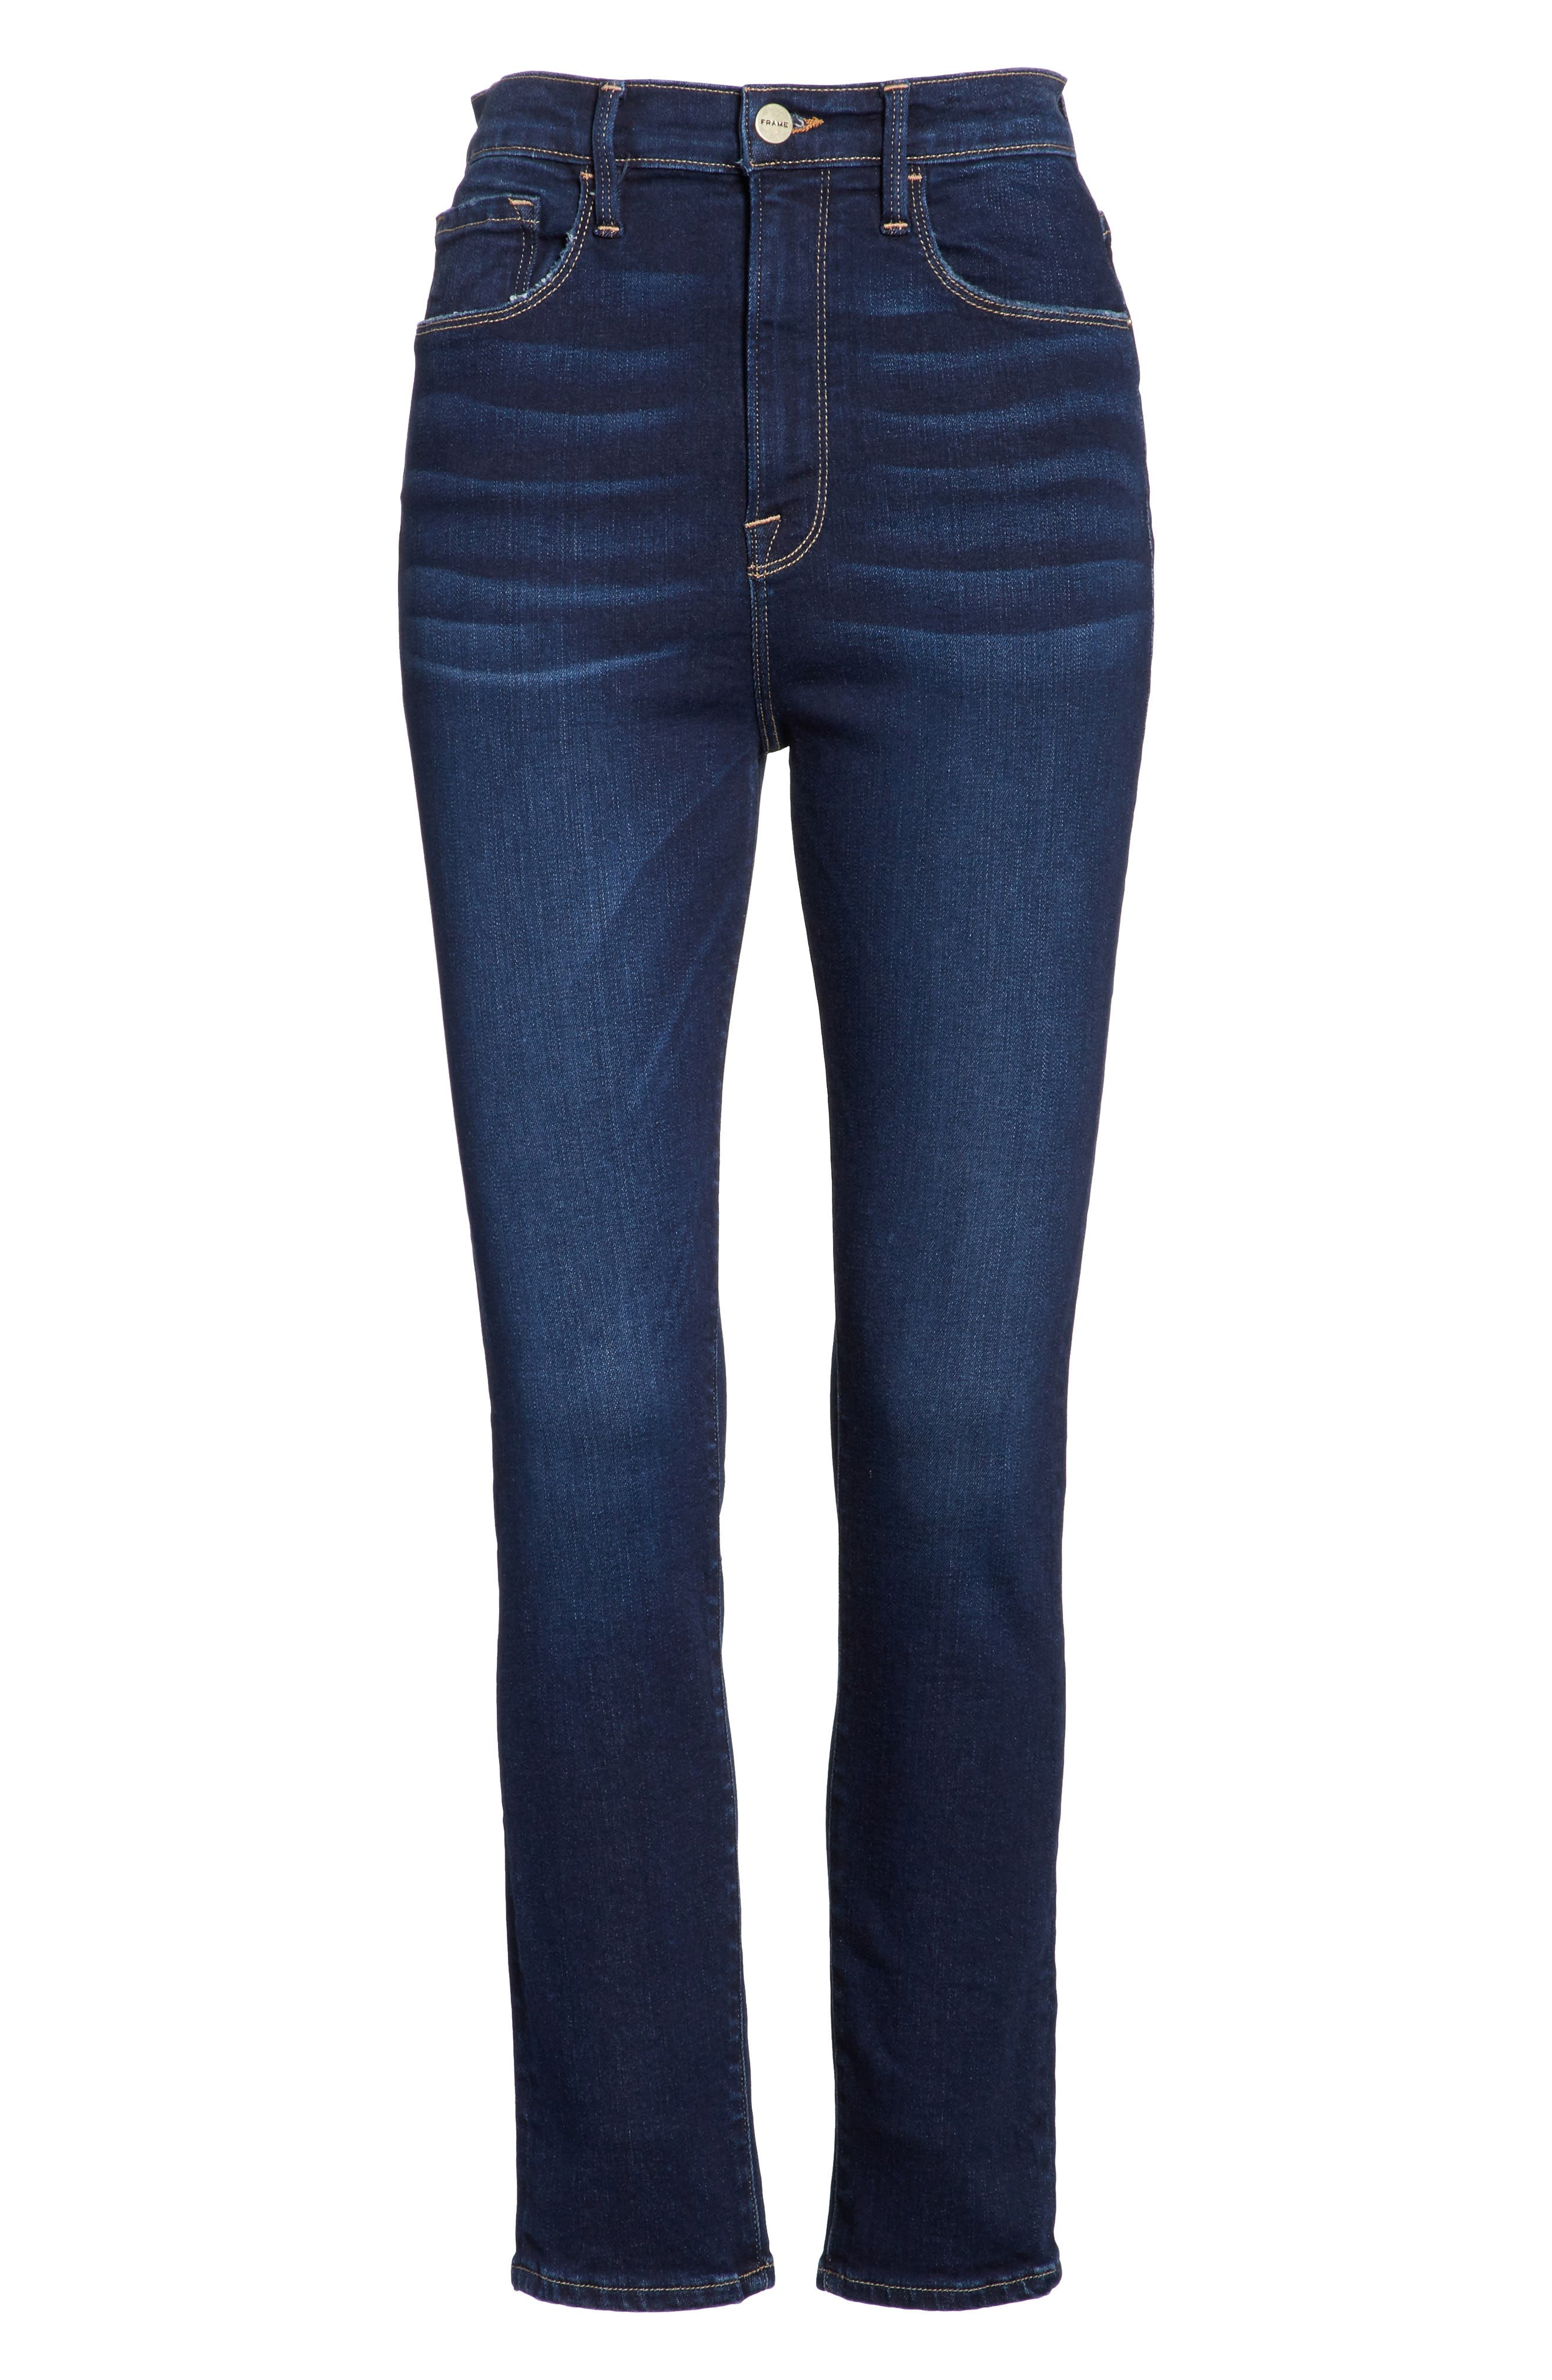 Ali High Waist Ankle Skinny Jeans,                             Alternate thumbnail 6, color,                             Cabana Exclusive